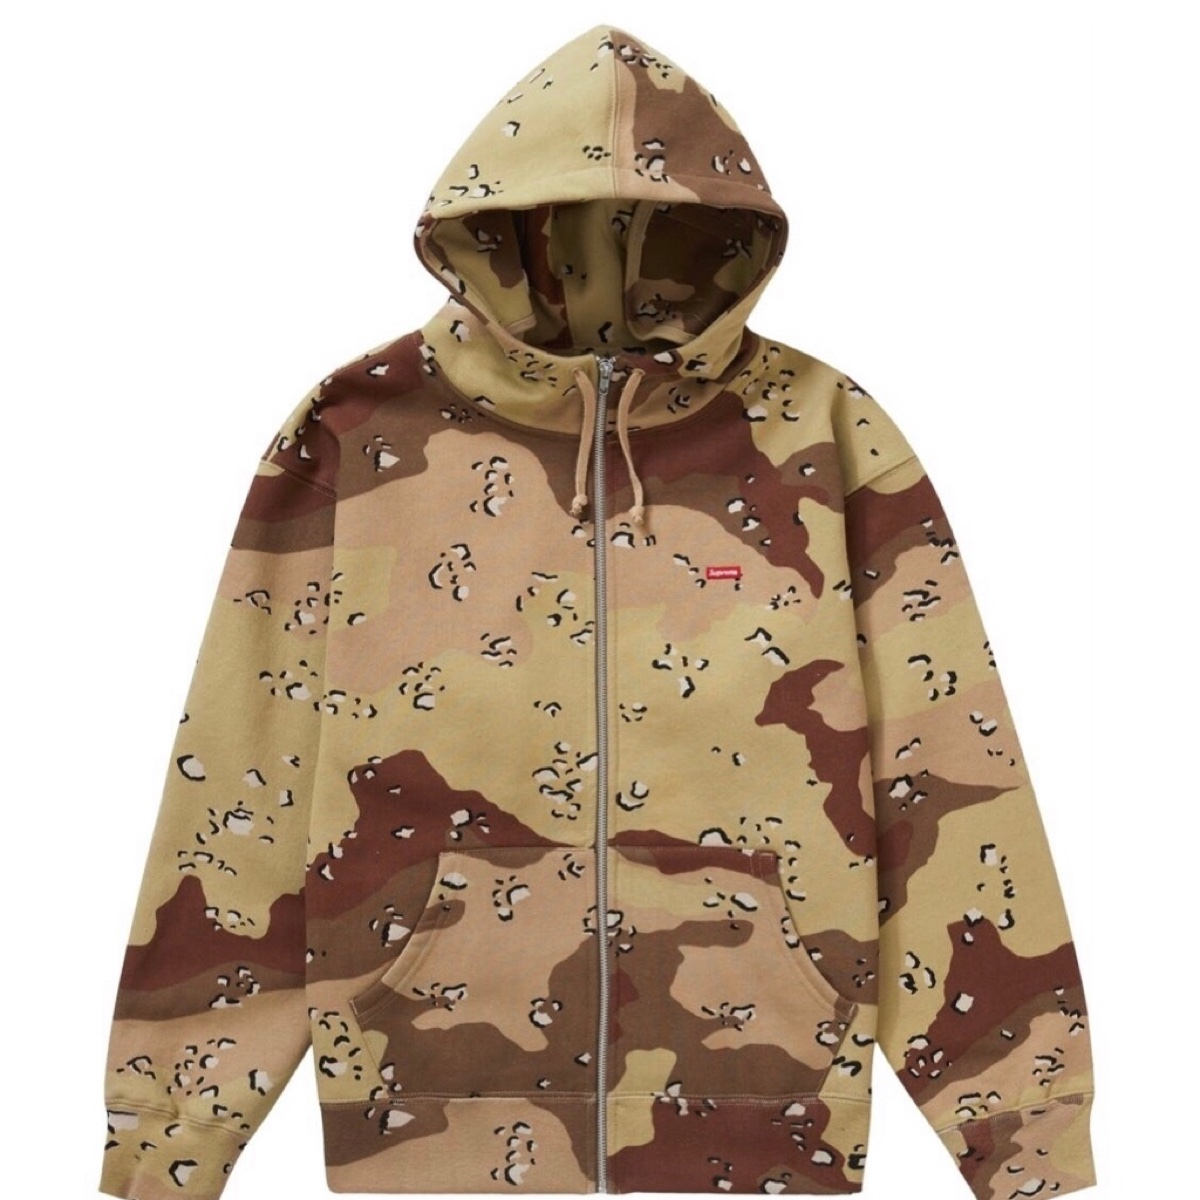 Supreme Small Box Facemask Zip Up Hooded Sweatshirt Chocolate Chip